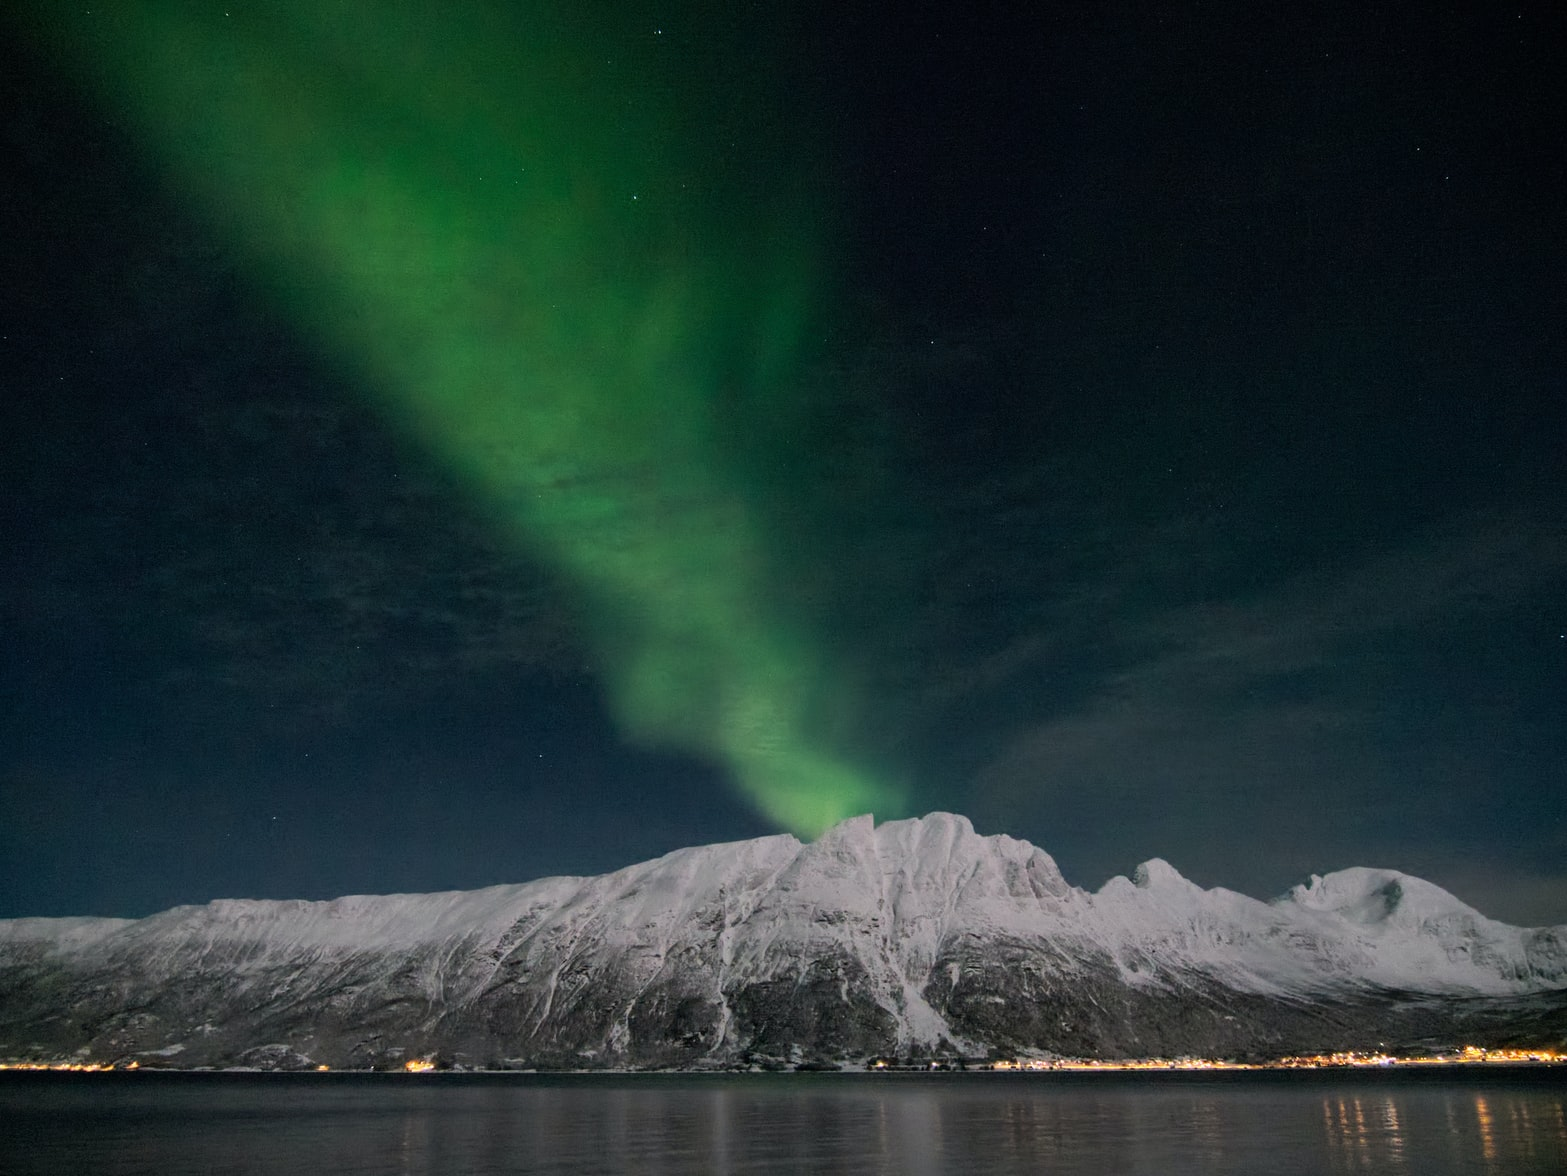 An arctic aurora borealis over the snowy mountains